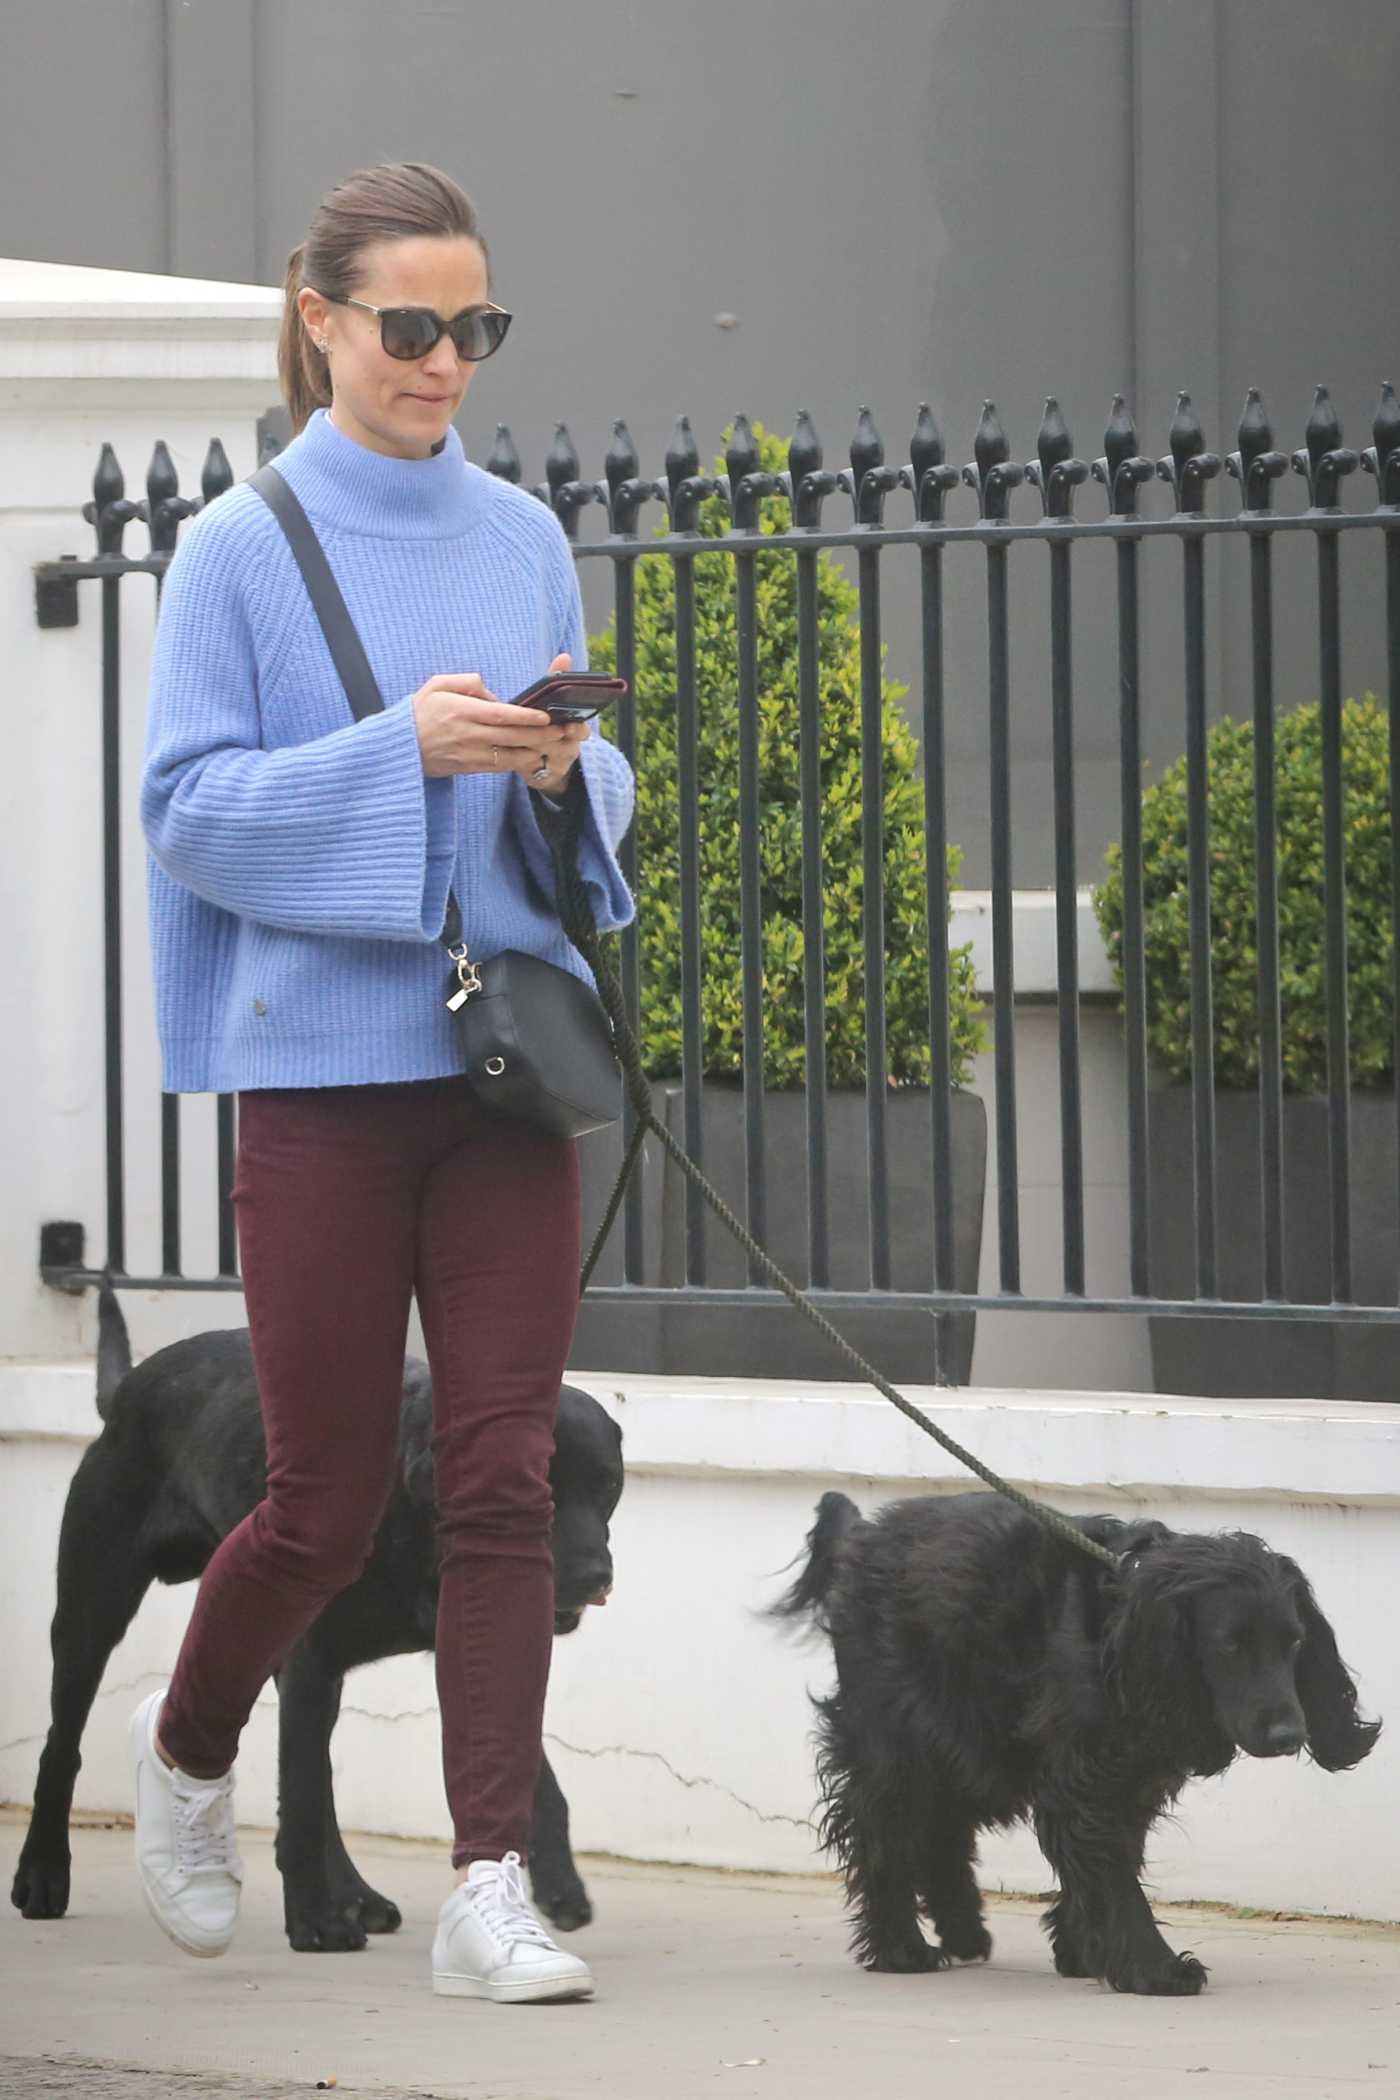 Pippa Middleton in a Blue Sweater Walks Her Dogs Out in London 03/29/2019